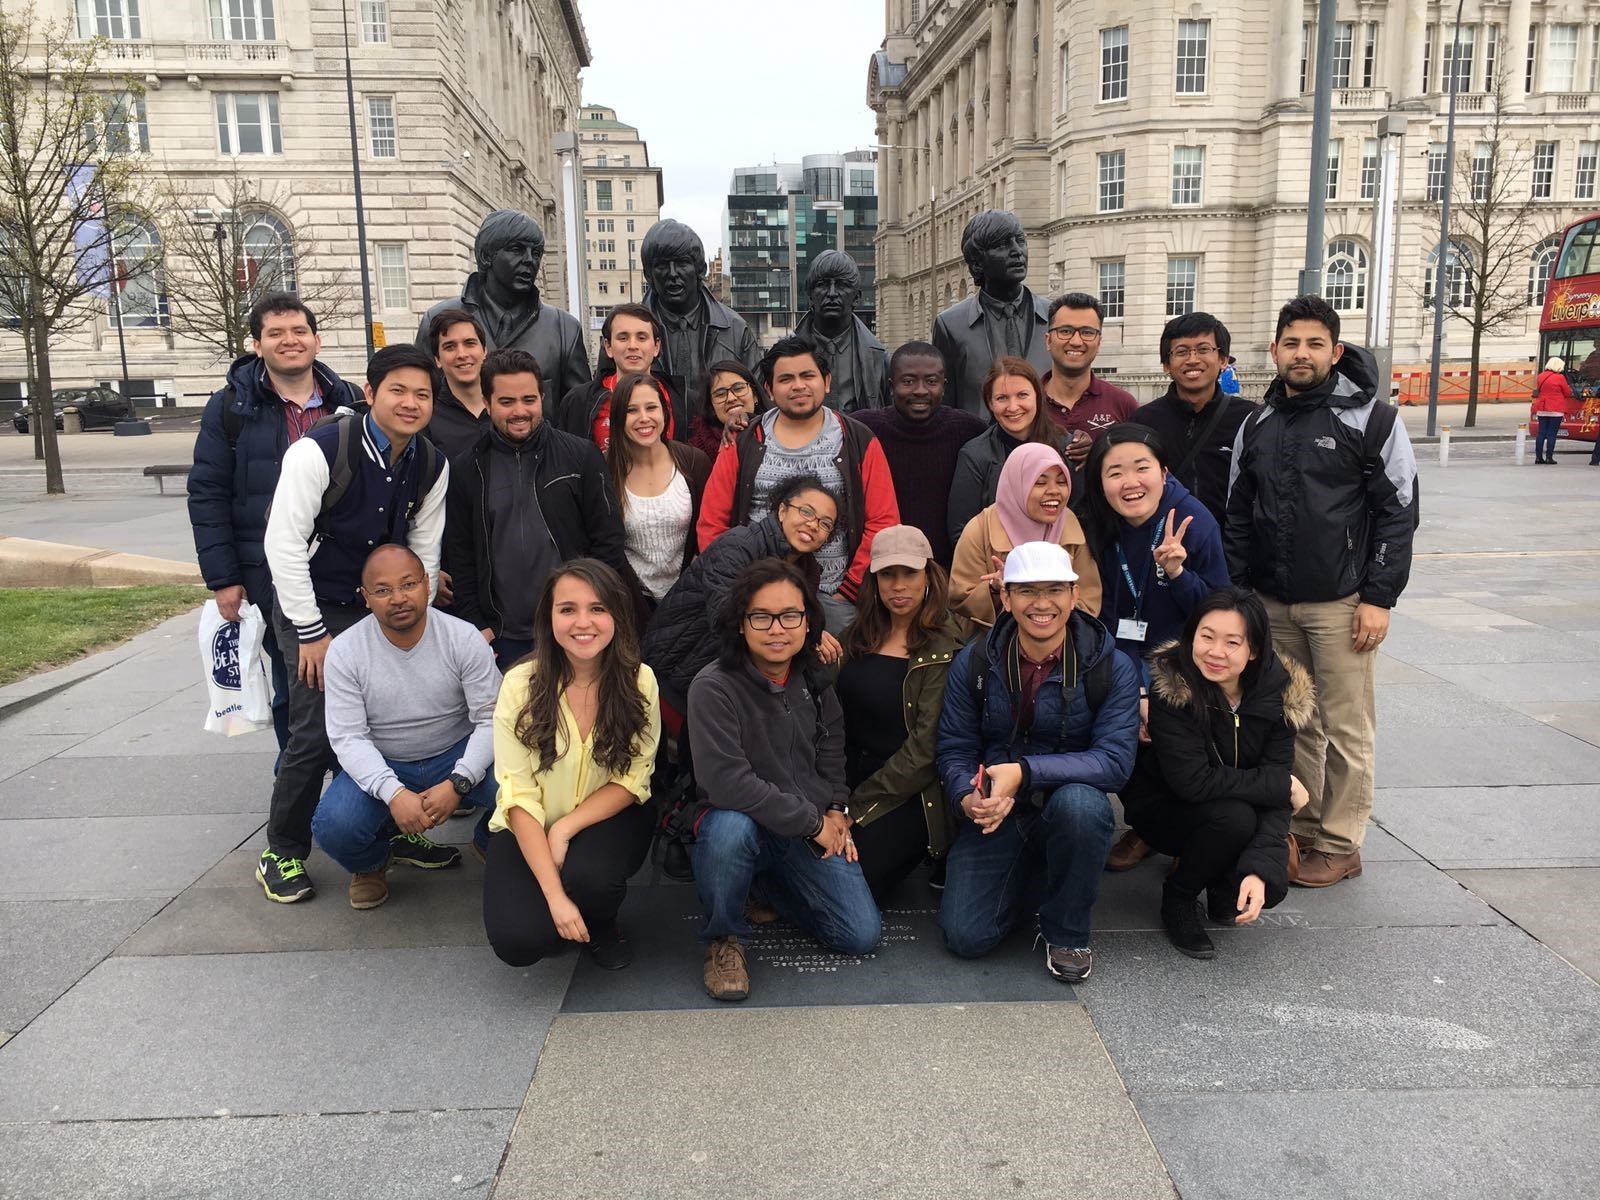 Cheveners at The Beatles Statue